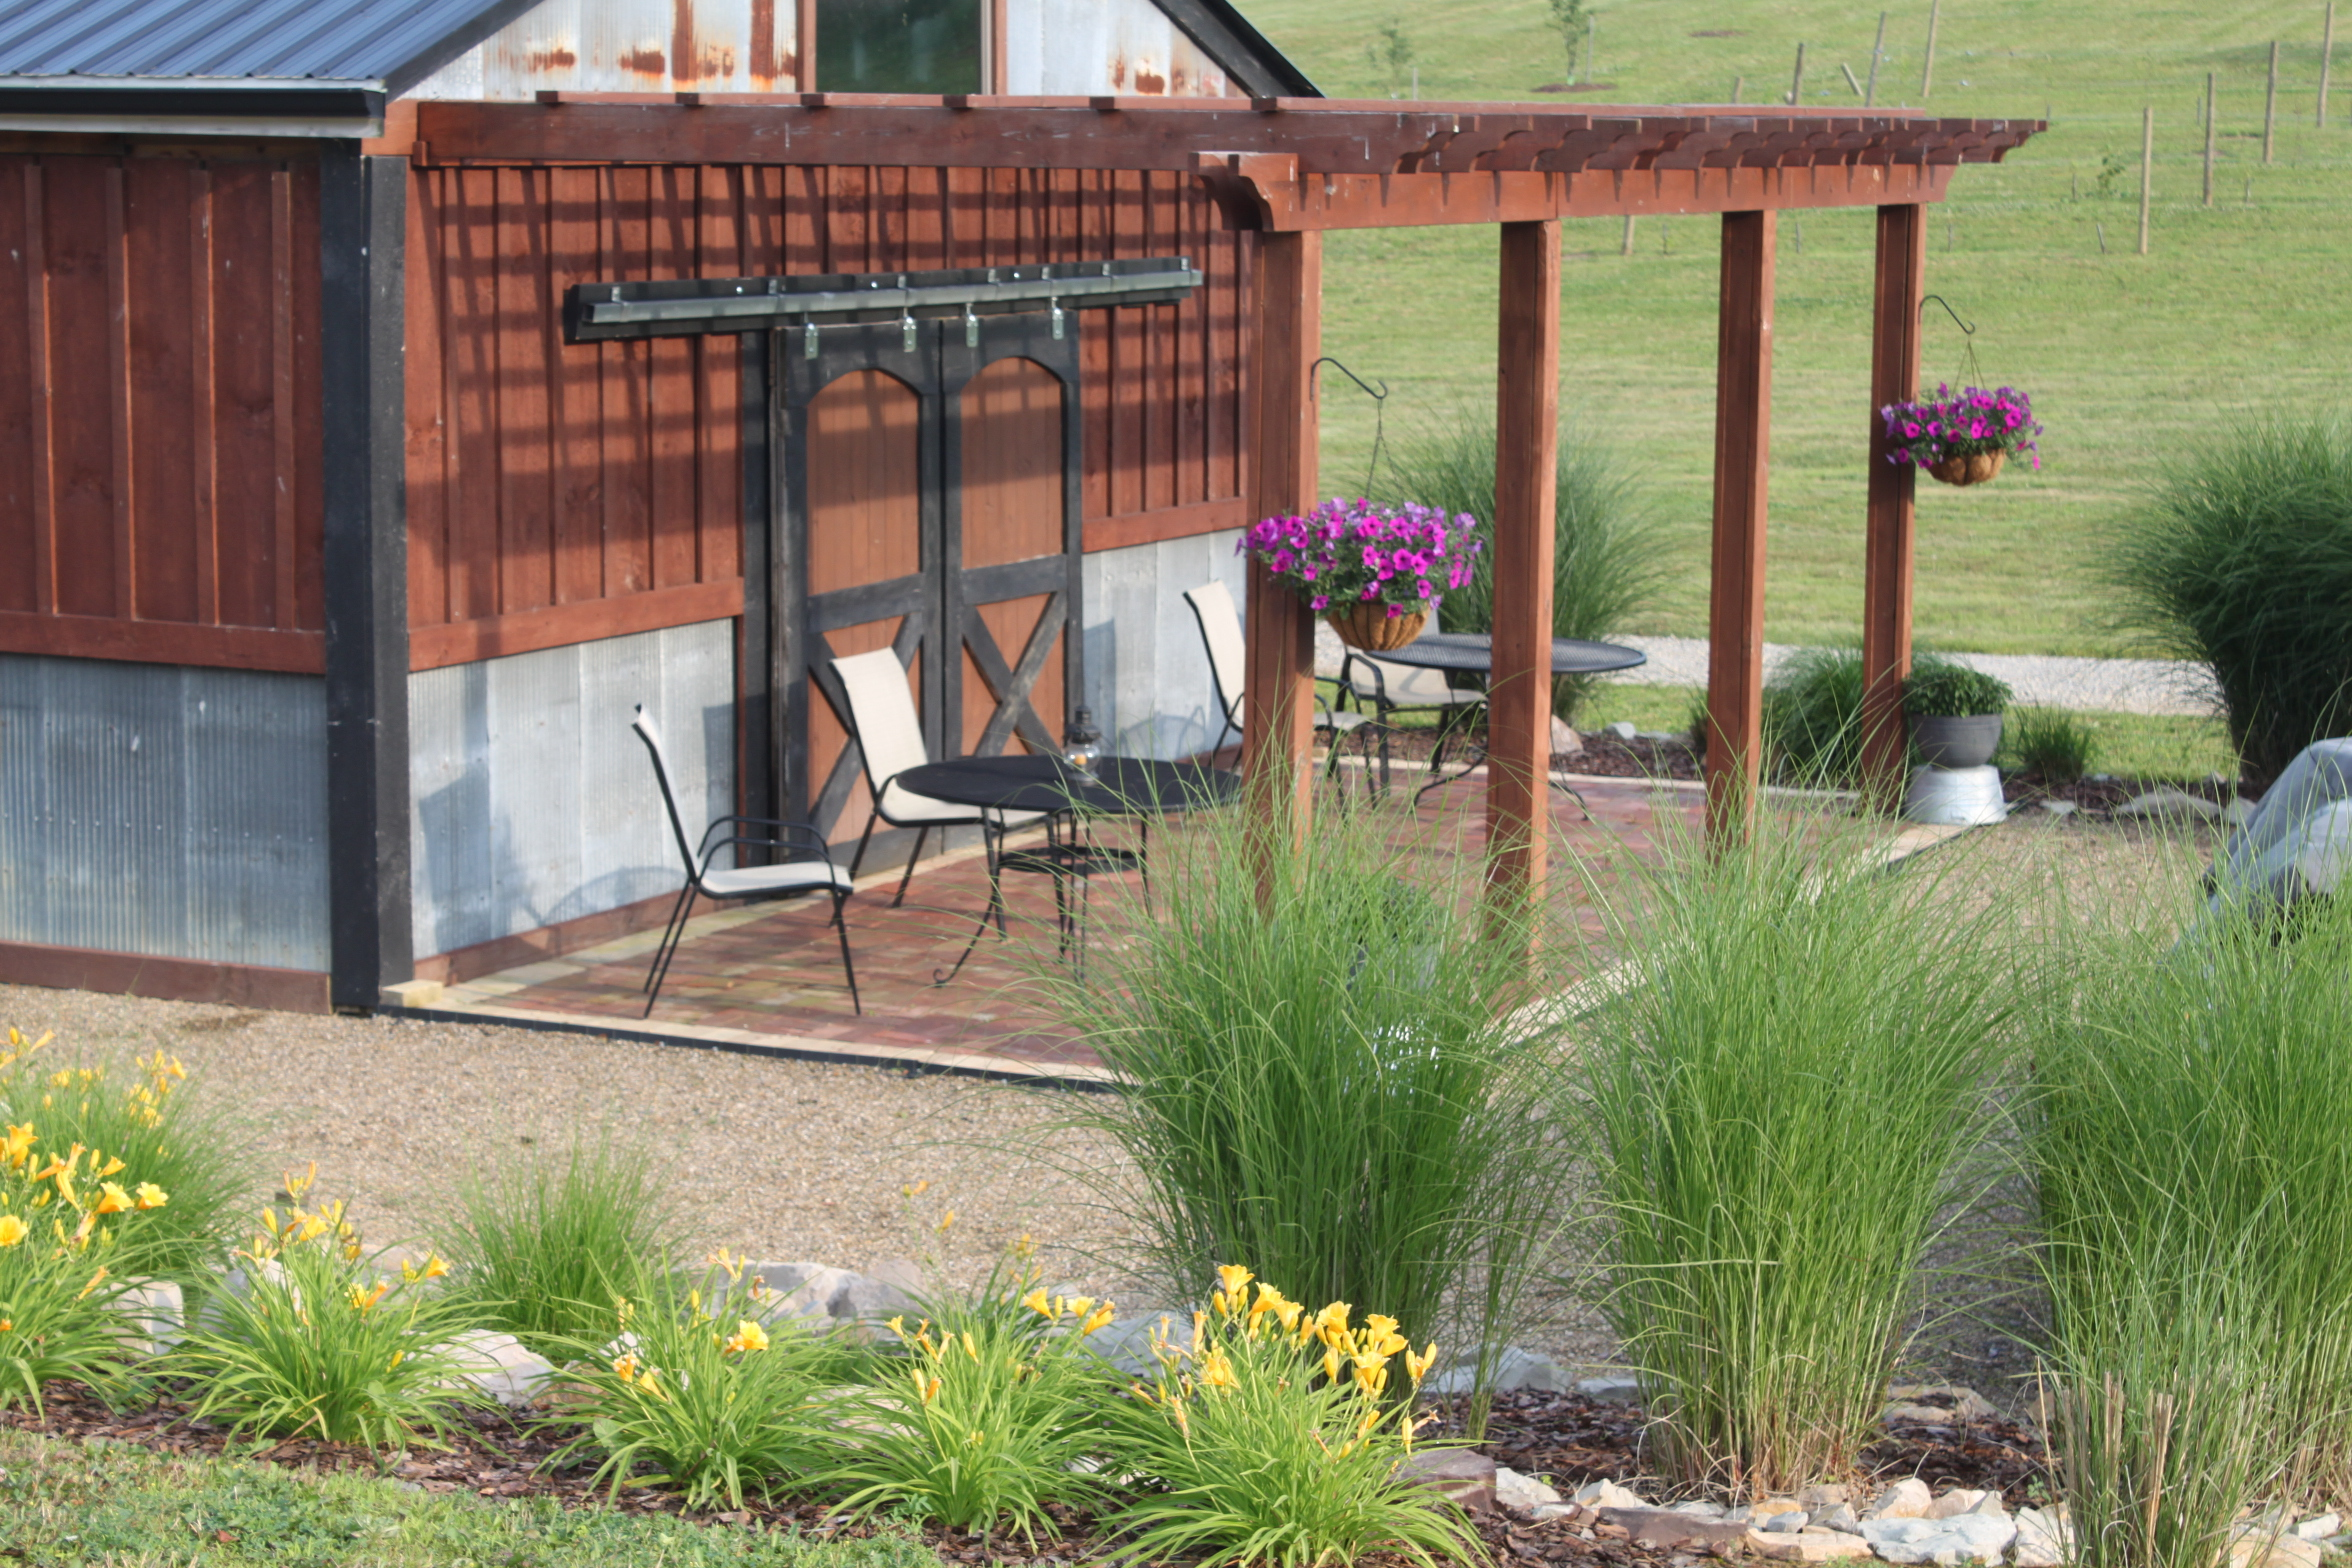 How to create beautiful landscaping without spending a lot - Craigslist little rock farm and garden ...